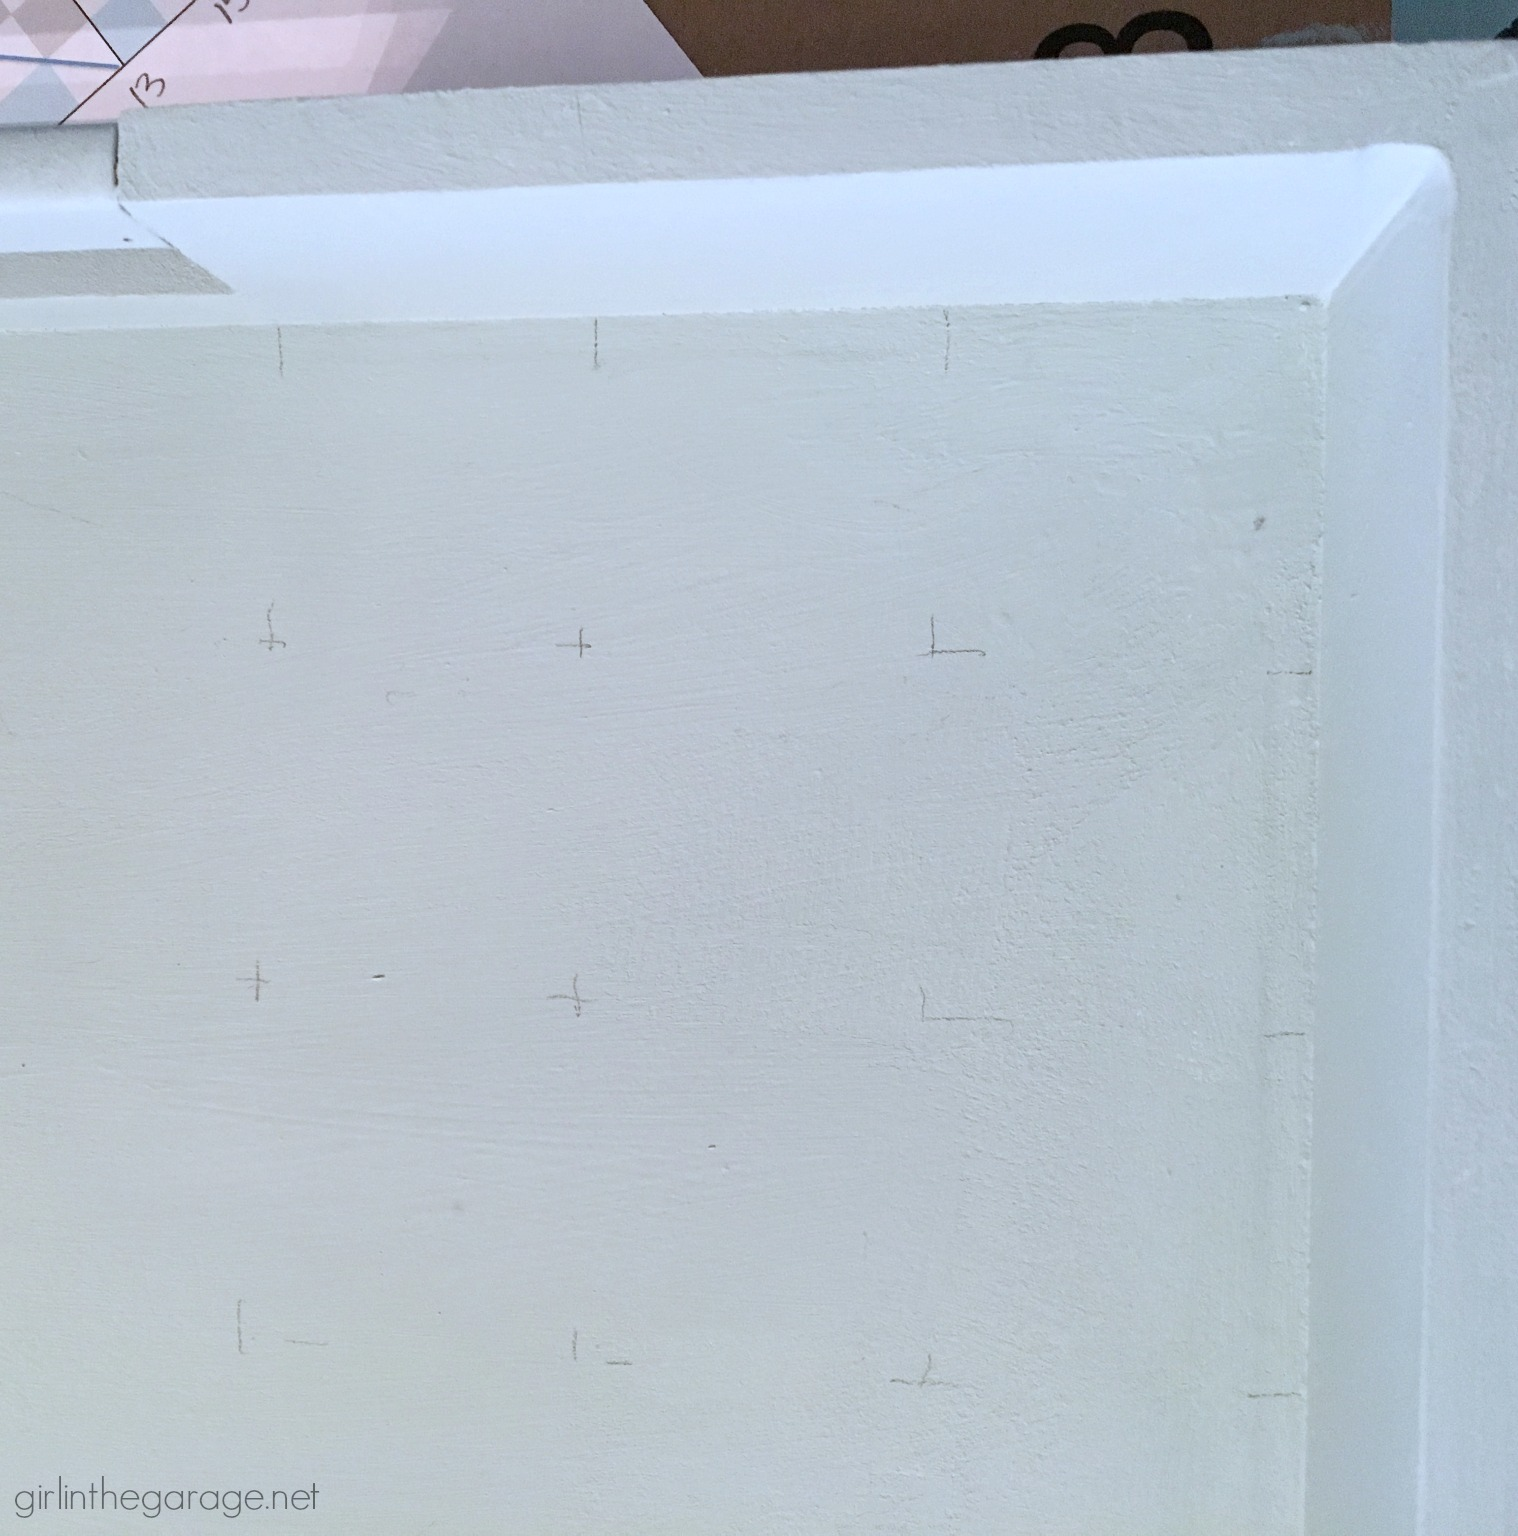 How to paint a barn quilt on a thrifted tray for a beautiful art piece. Step by step DIY tutorial by Girl in the Garage.